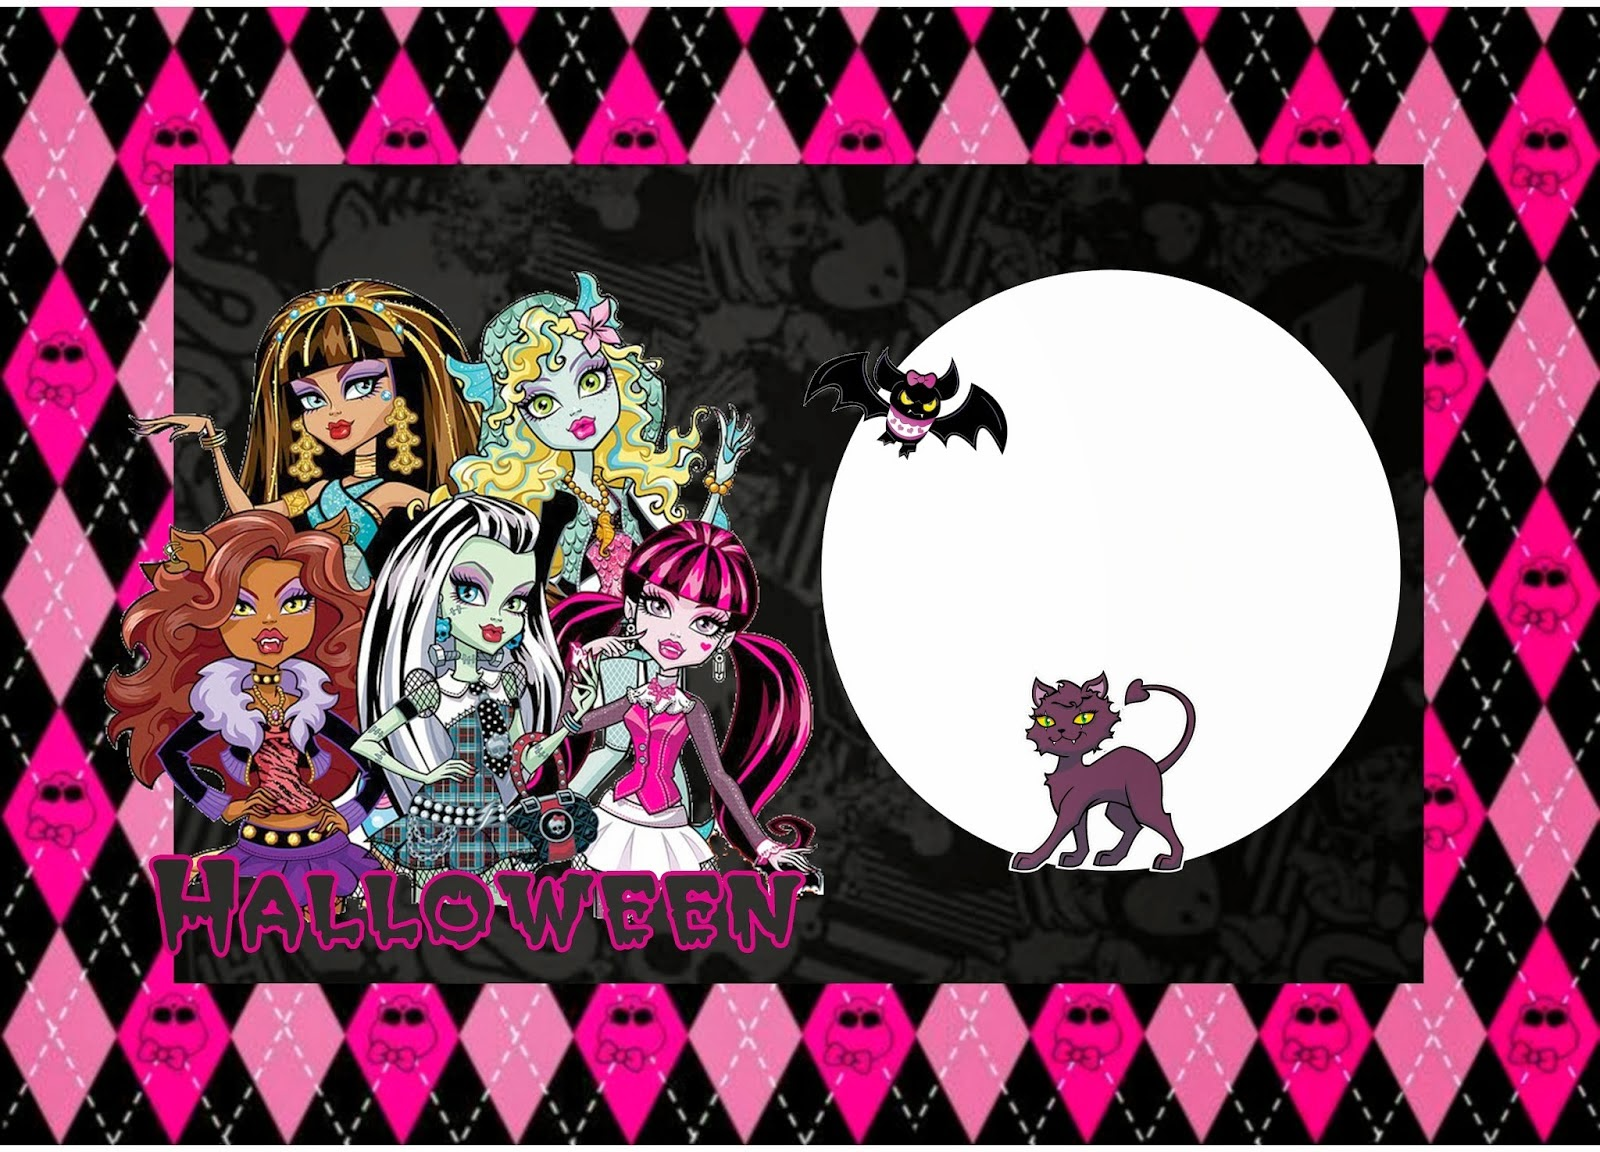 Monster High Free Invitation Template was luxury invitations template